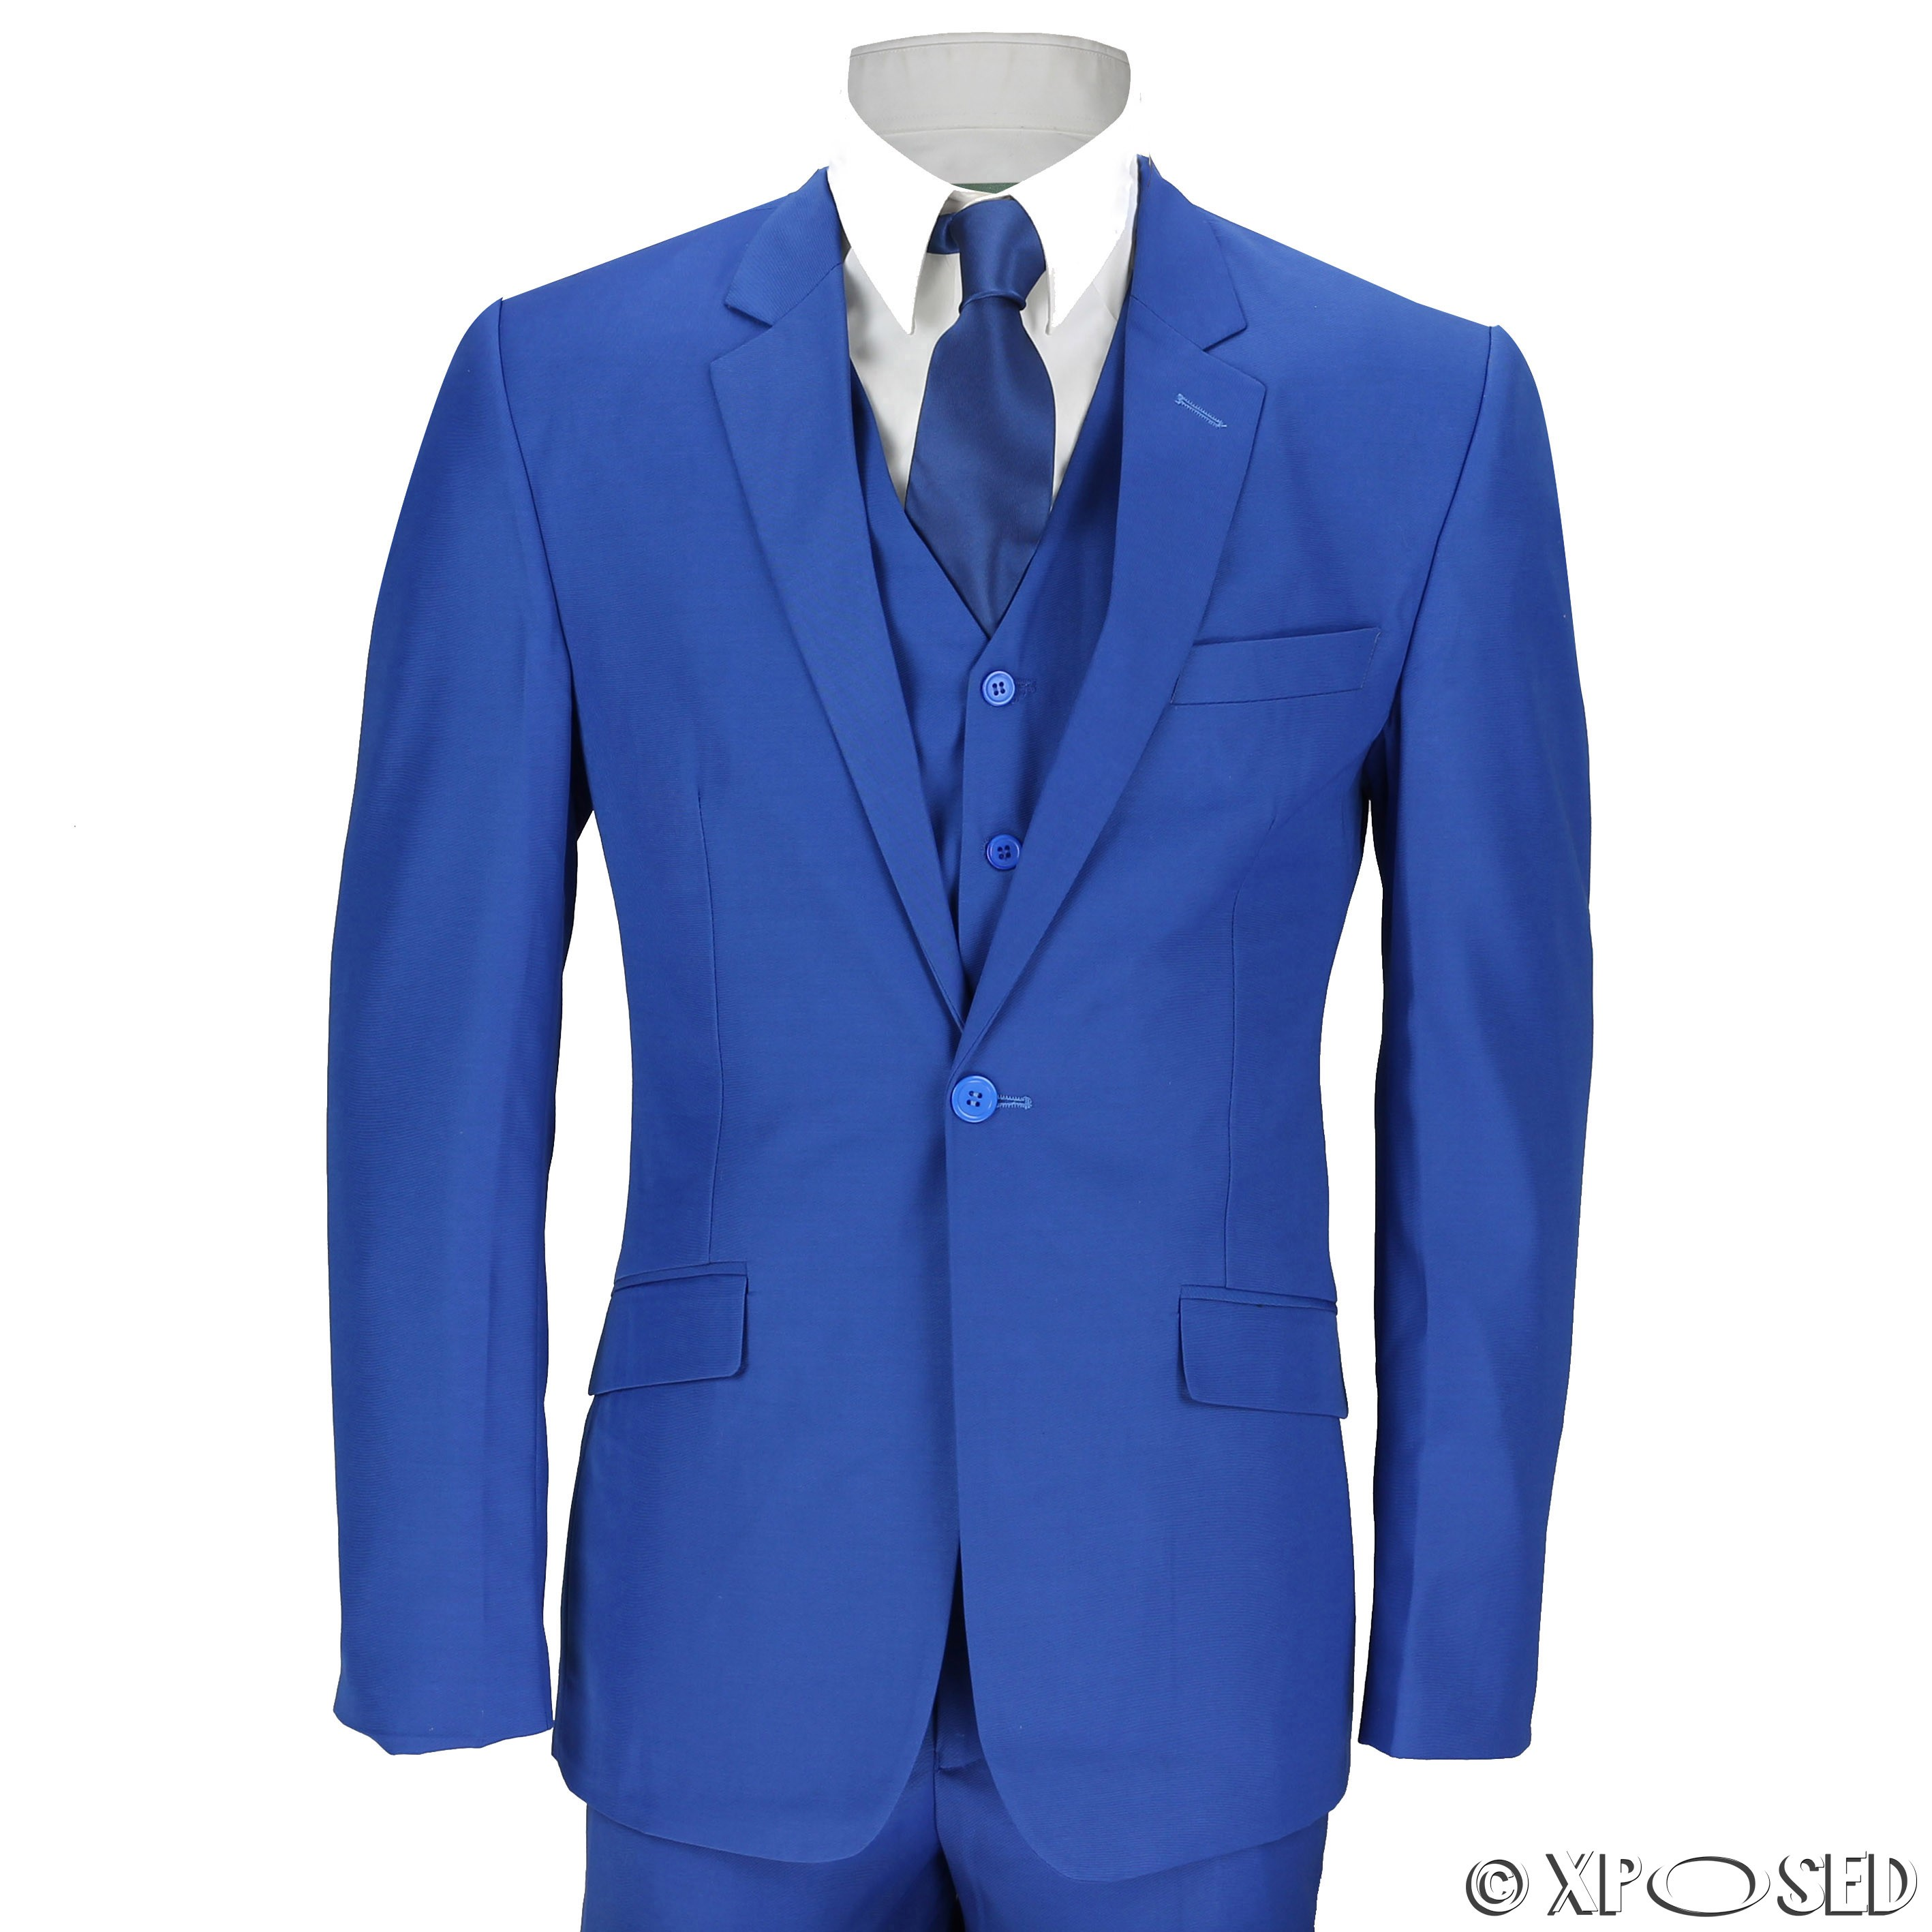 New Mens 3 Piece Suit Royal Blue Tailored Fit Smart Casual Formal ...